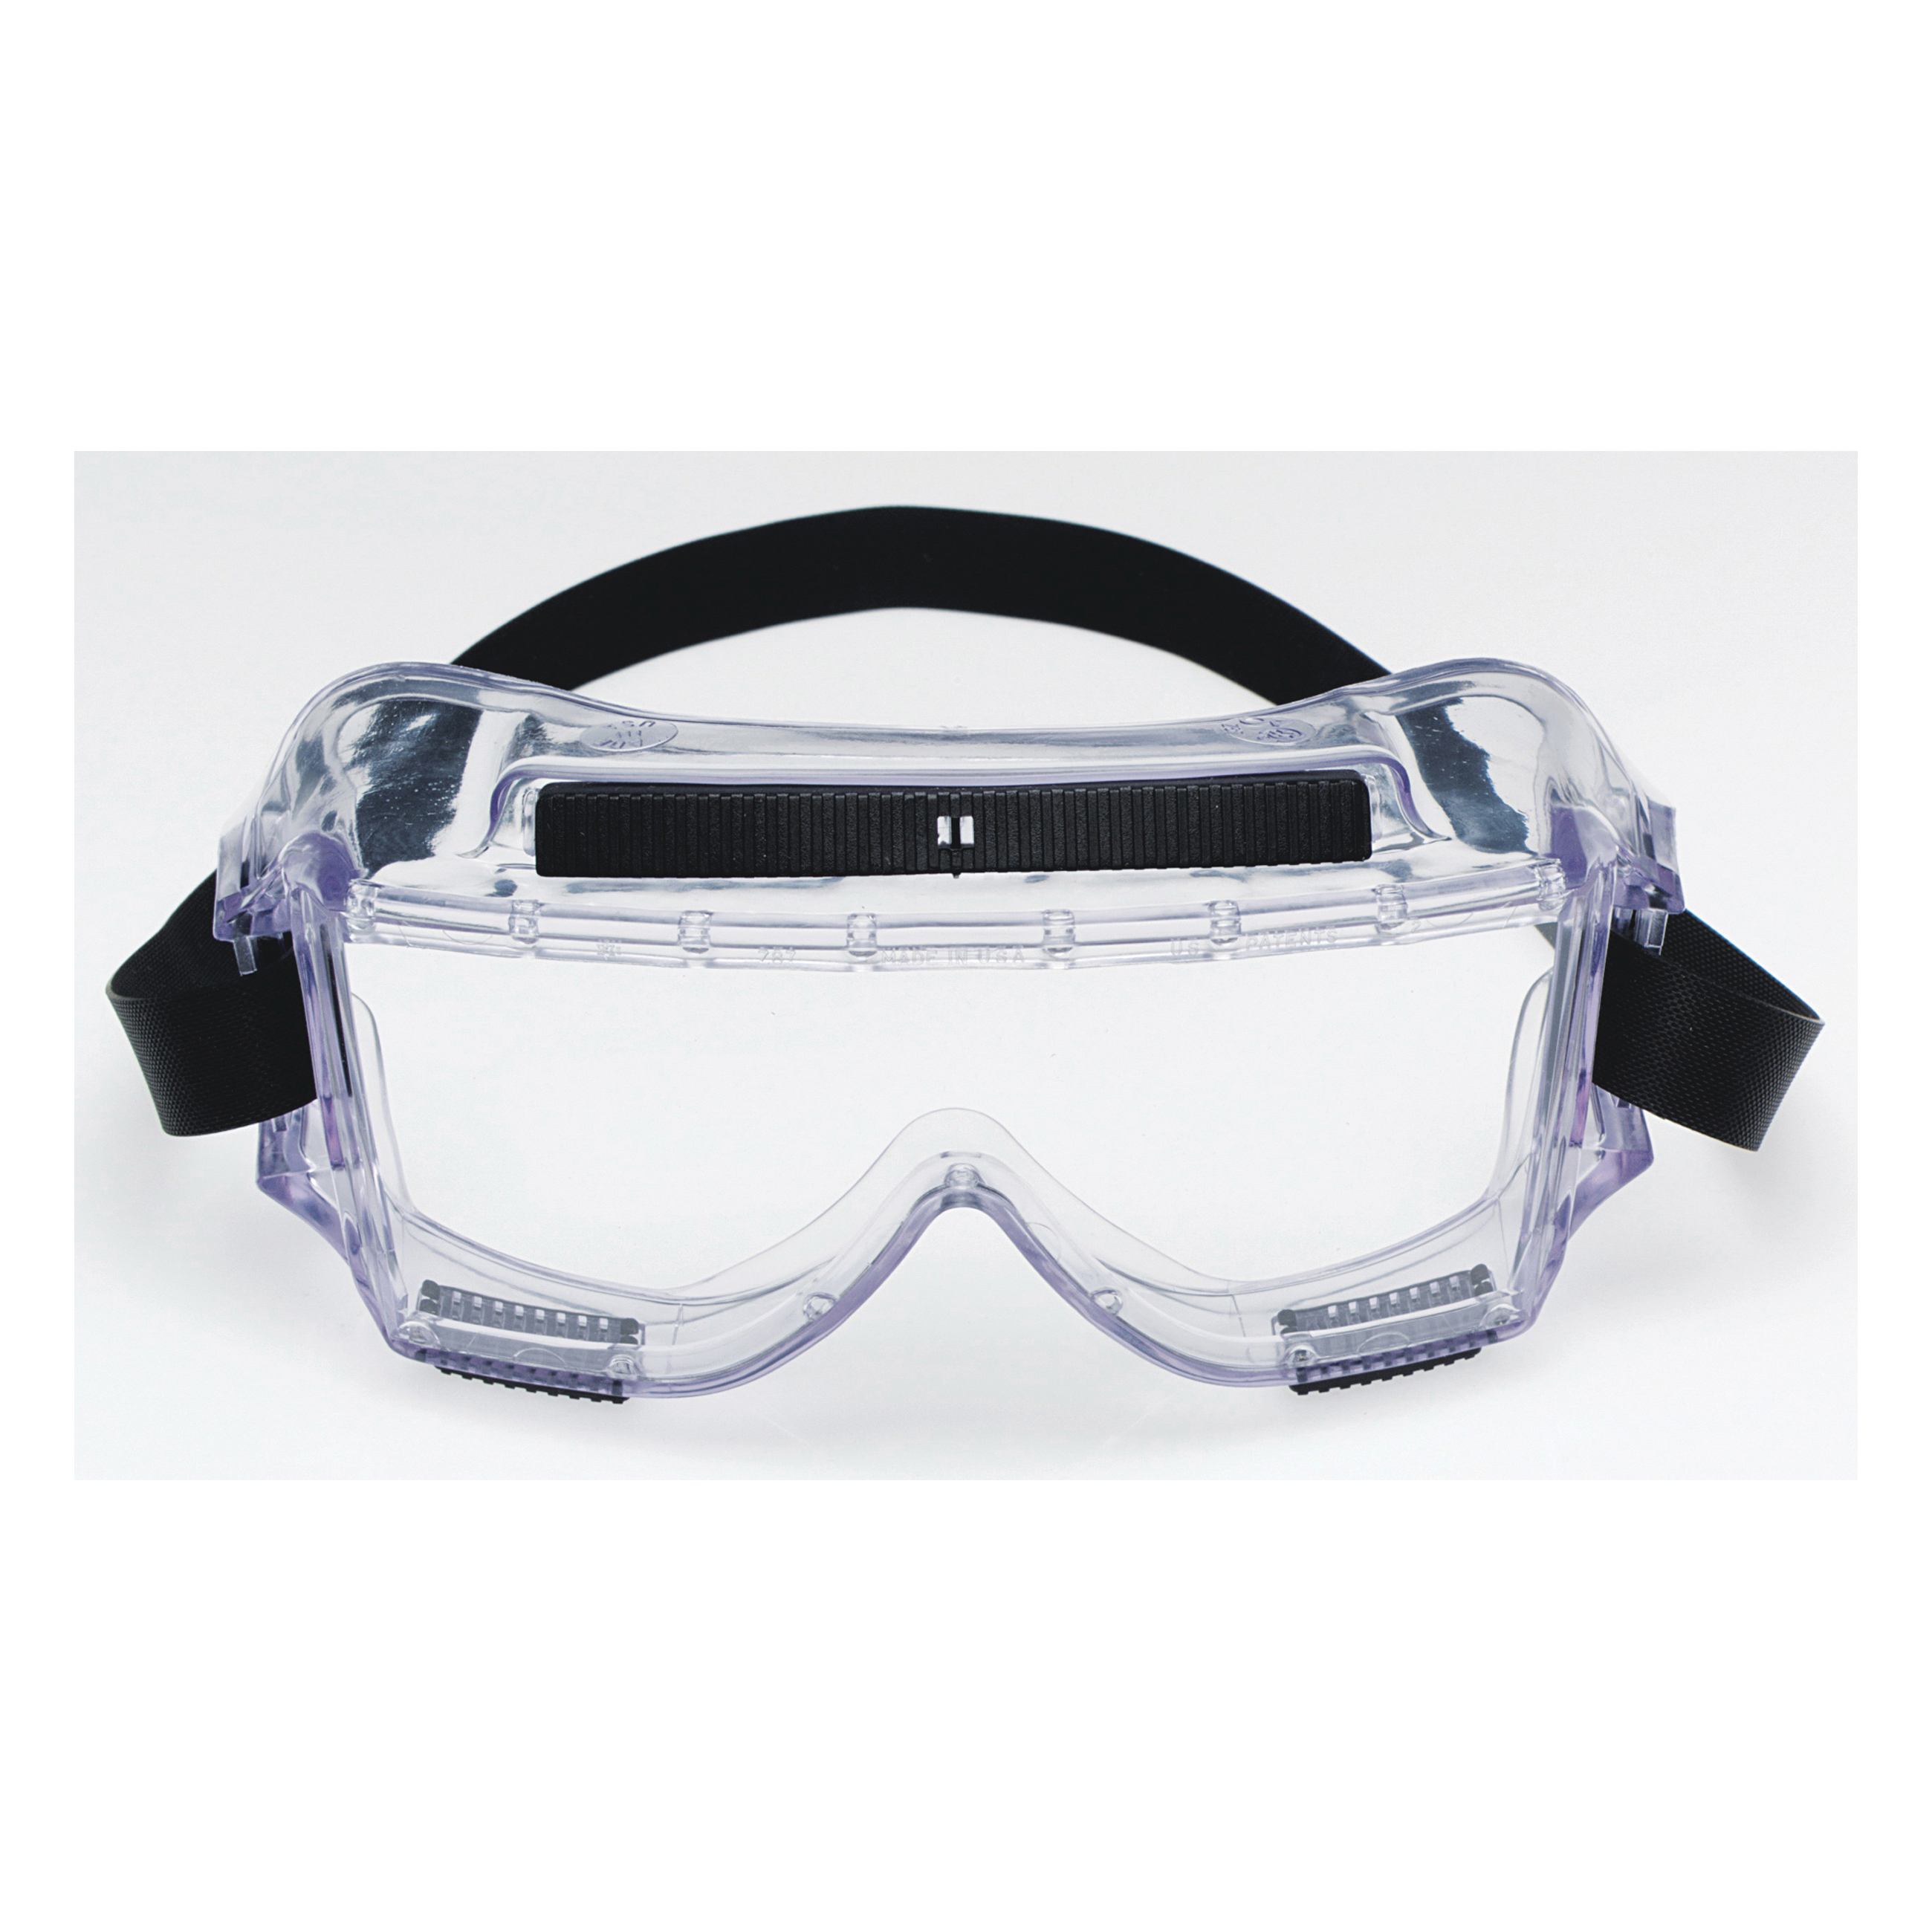 3M™ Centurion™ 078371-62389 Value Safety Goggles, Anti-Fog/Impact-Resistant/UV-Protective Clear Polycarbonate Lens, 99.9 % UV Protection, Neoprene Strap, ANSI Z87.1-2010, CSA Z94.3-2007